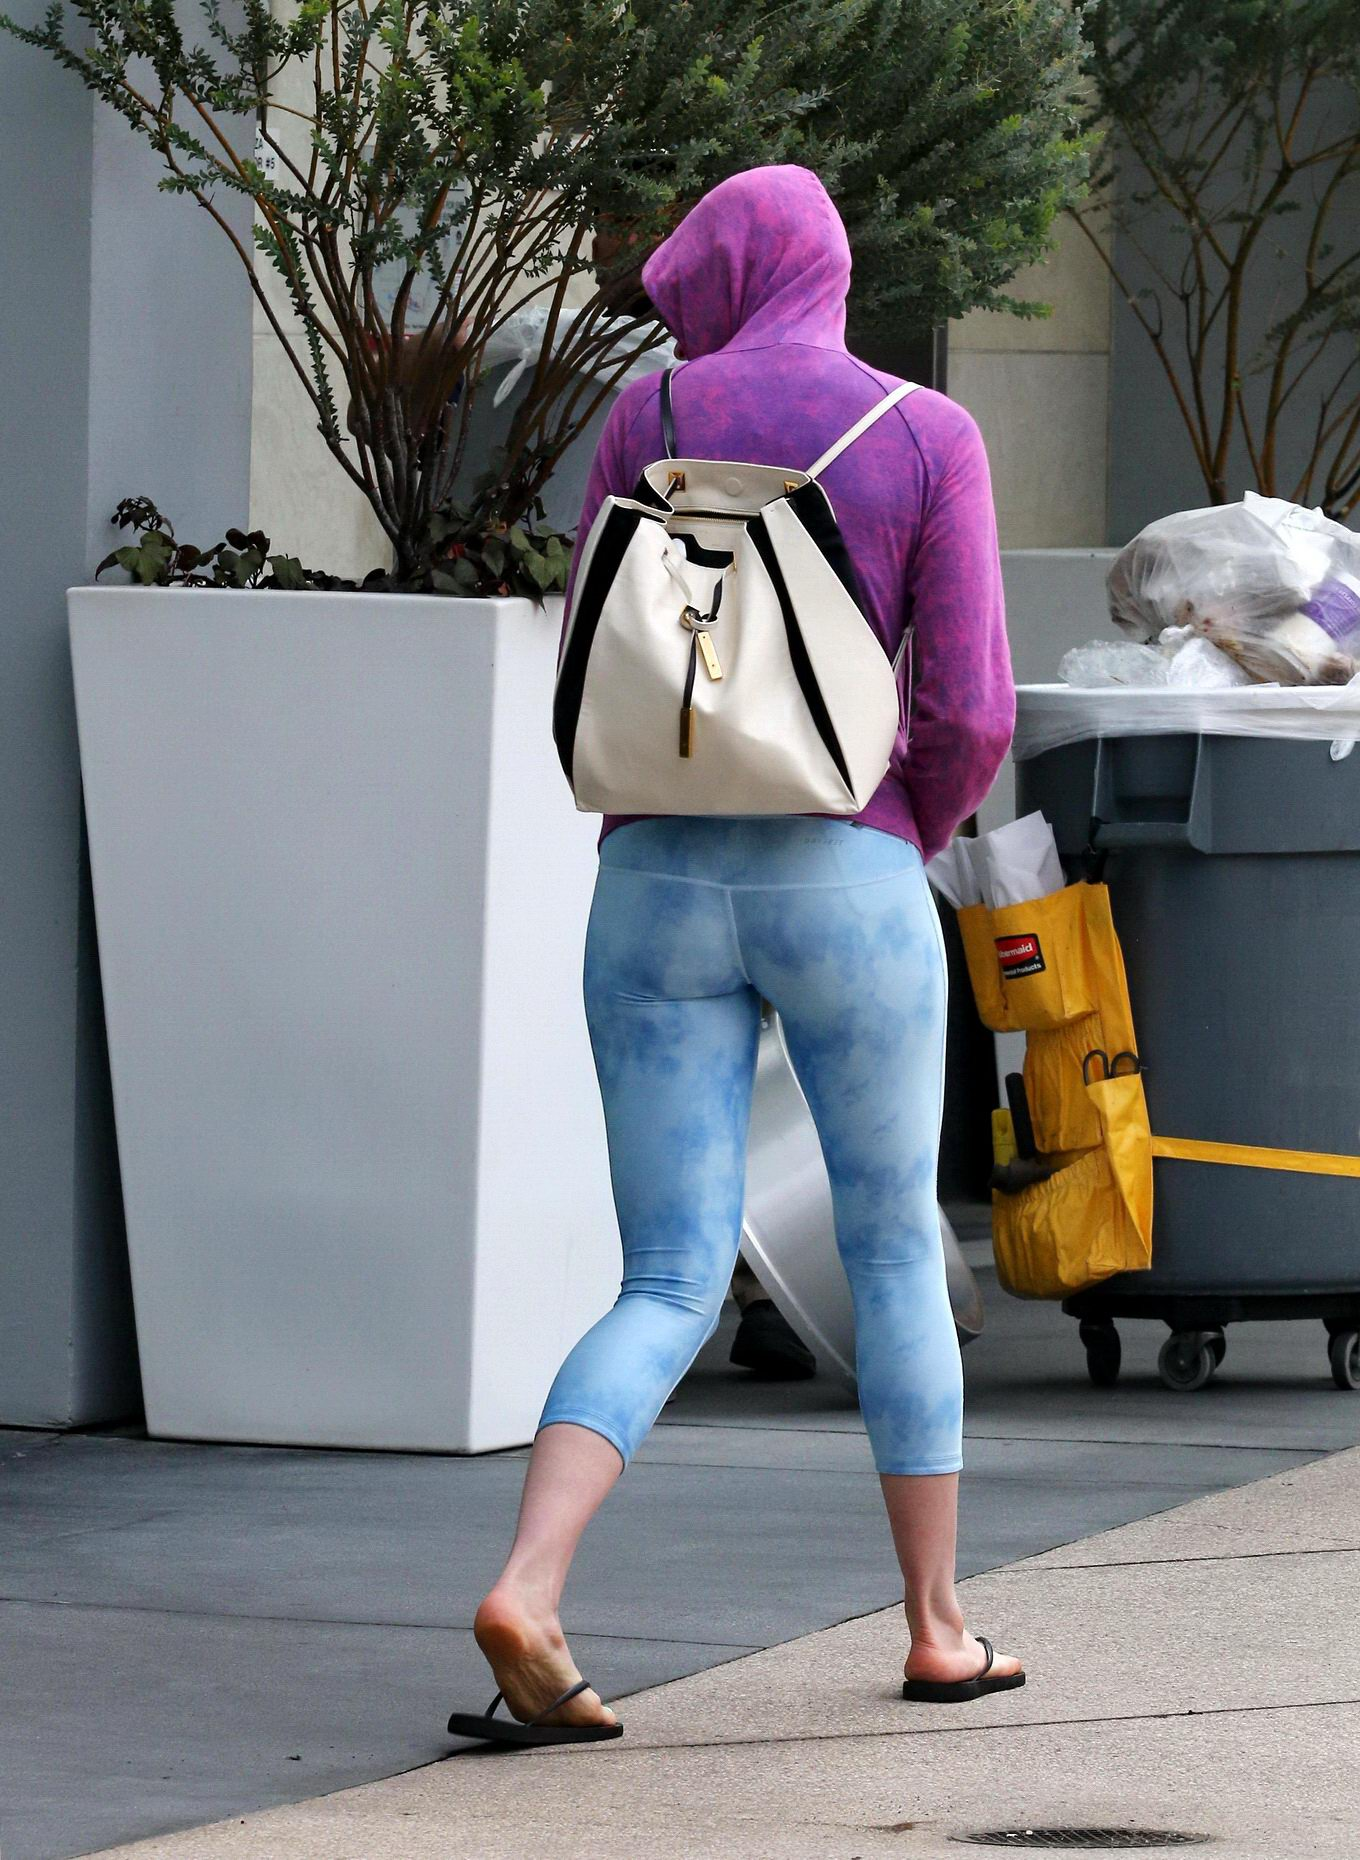 Anne Hathaway Showing Off Her Ass And Camel-Toe In Sky -4280